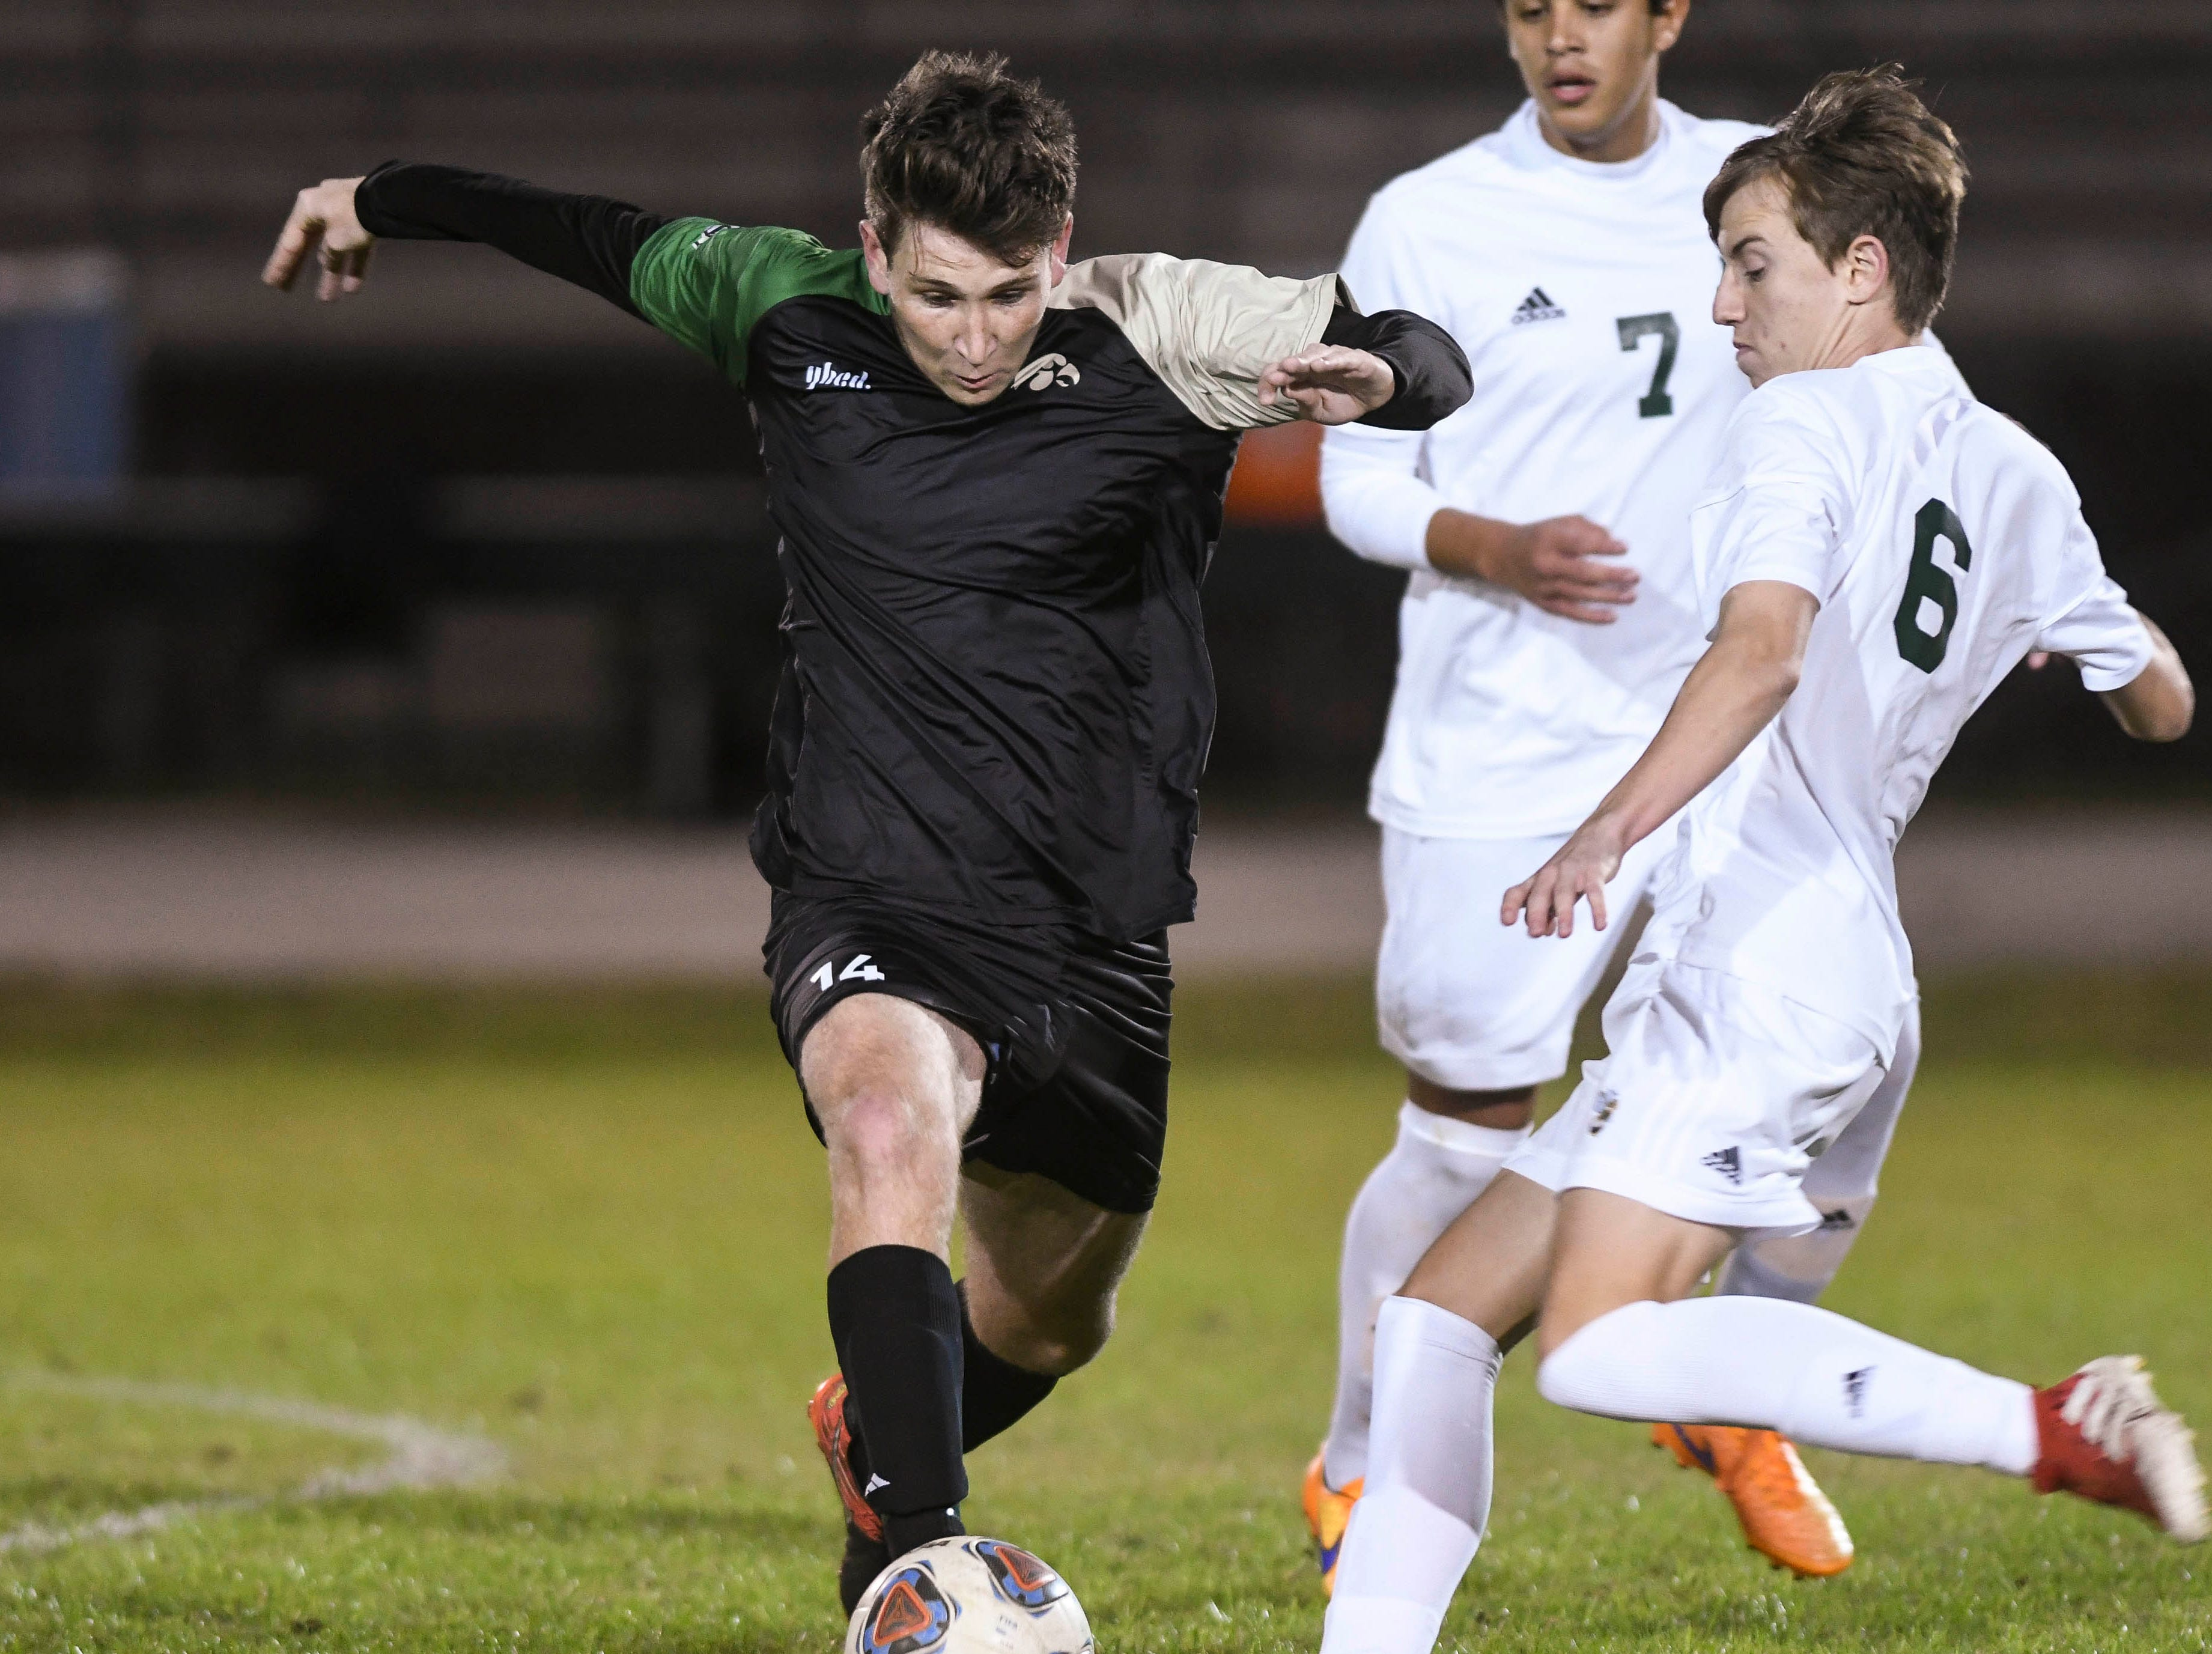 Patrick Murtha of Viera is challenged by Seamus Wixted of Melbourne Central Catholic during Friday's game in Viera.